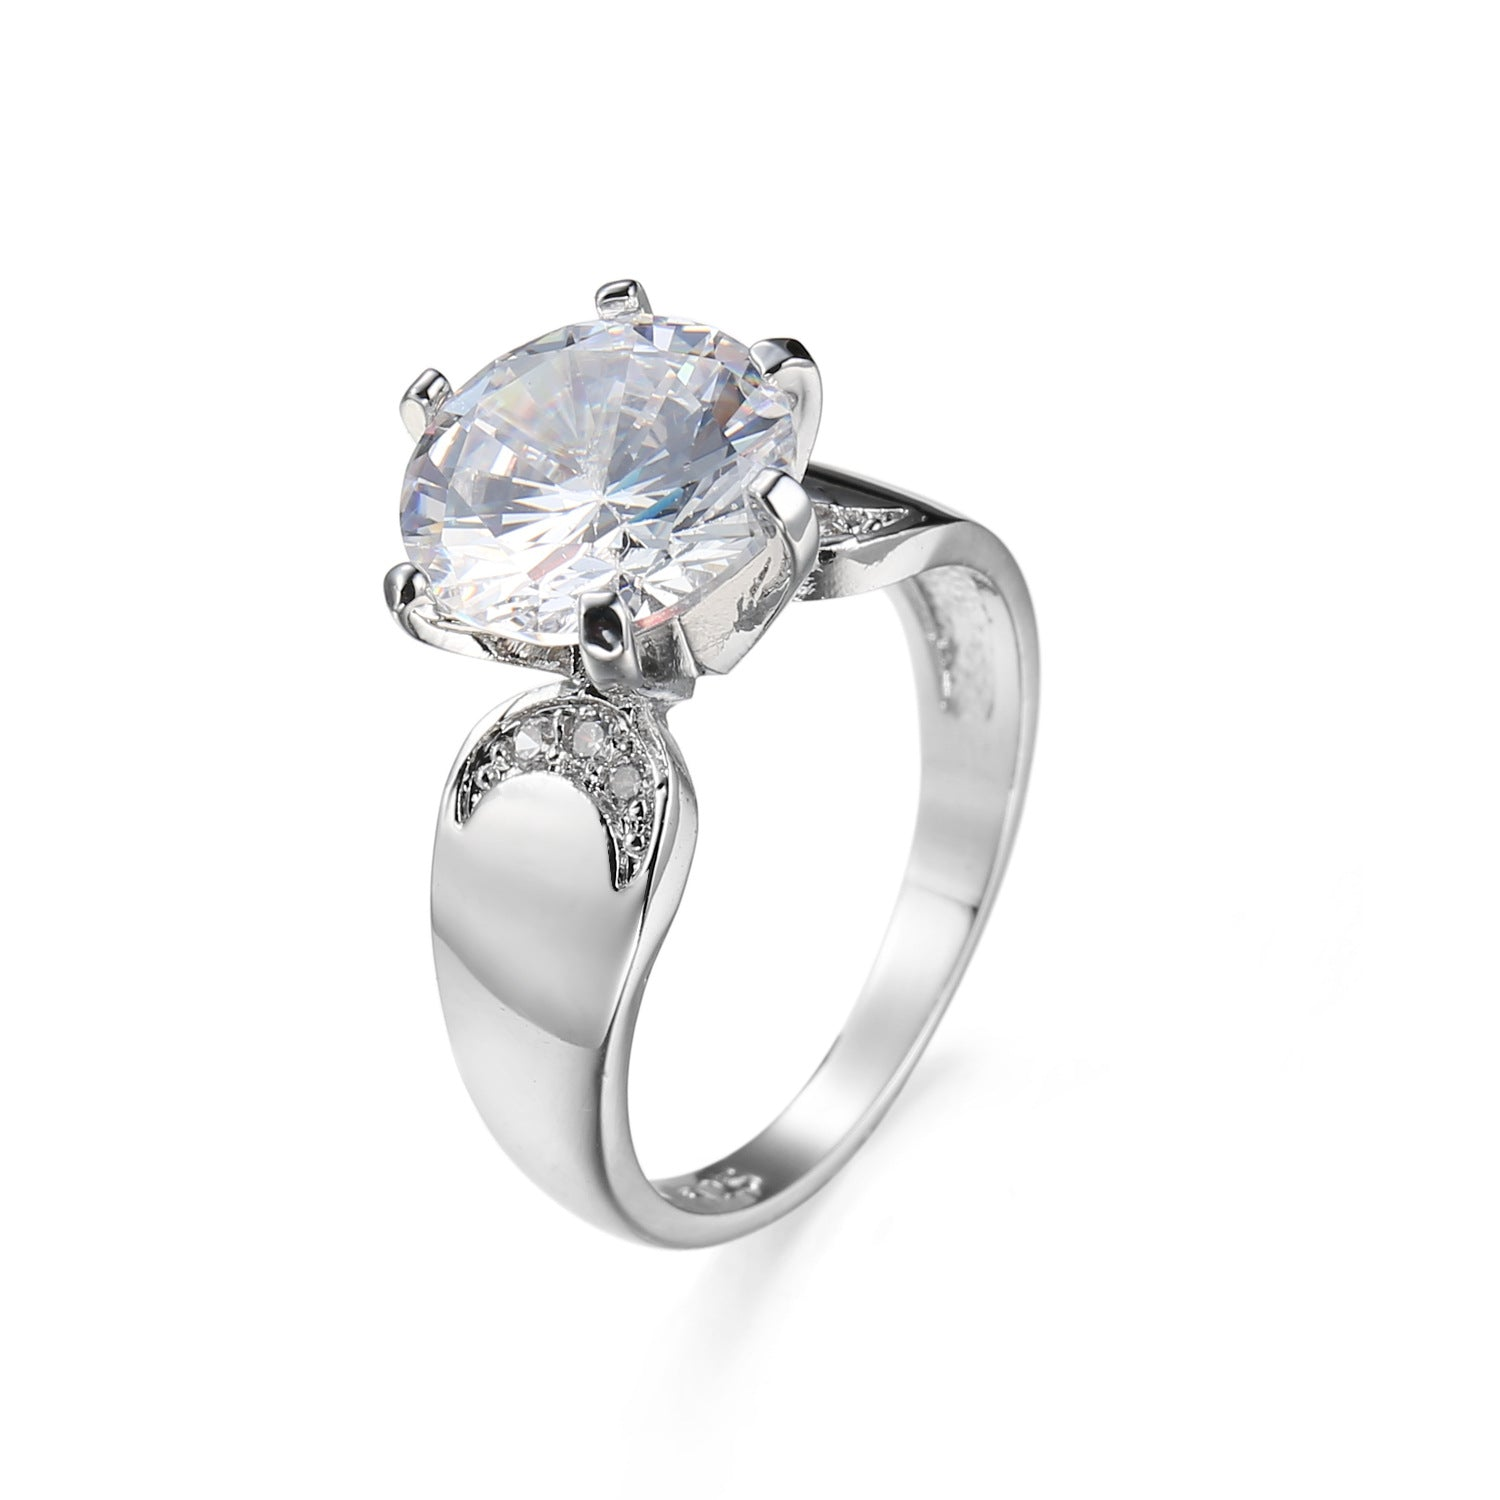 ID:R115 Women 18K White Gold GF Antique Jewelry Engagement Wedding Ring Solitaire With Accent